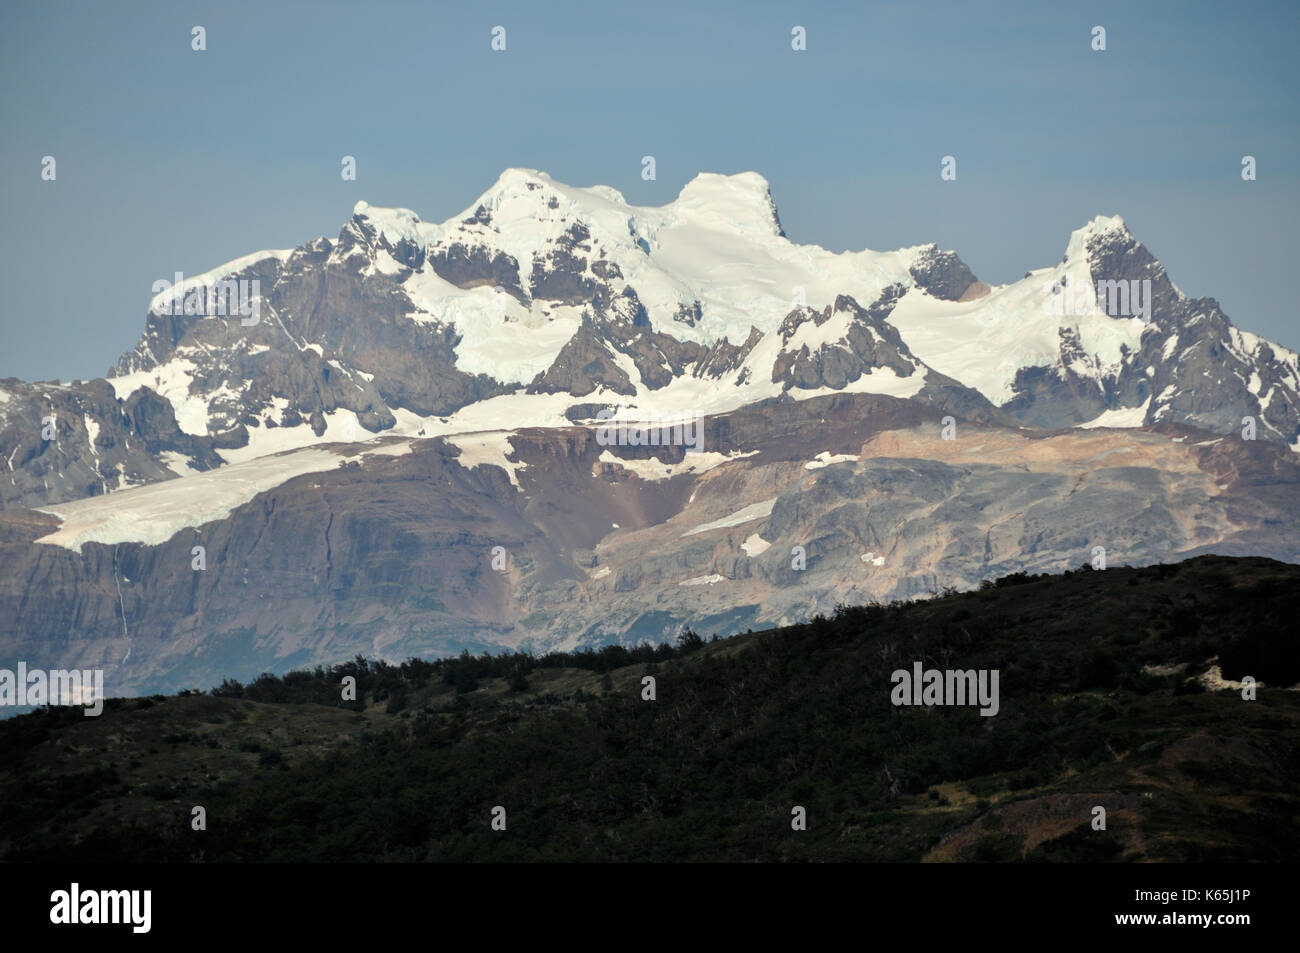 rarely seen and rarely climbed, Monte Balmaceda in the south of Chile´s Patagonia, near Torres del Paine national park - Stock Image